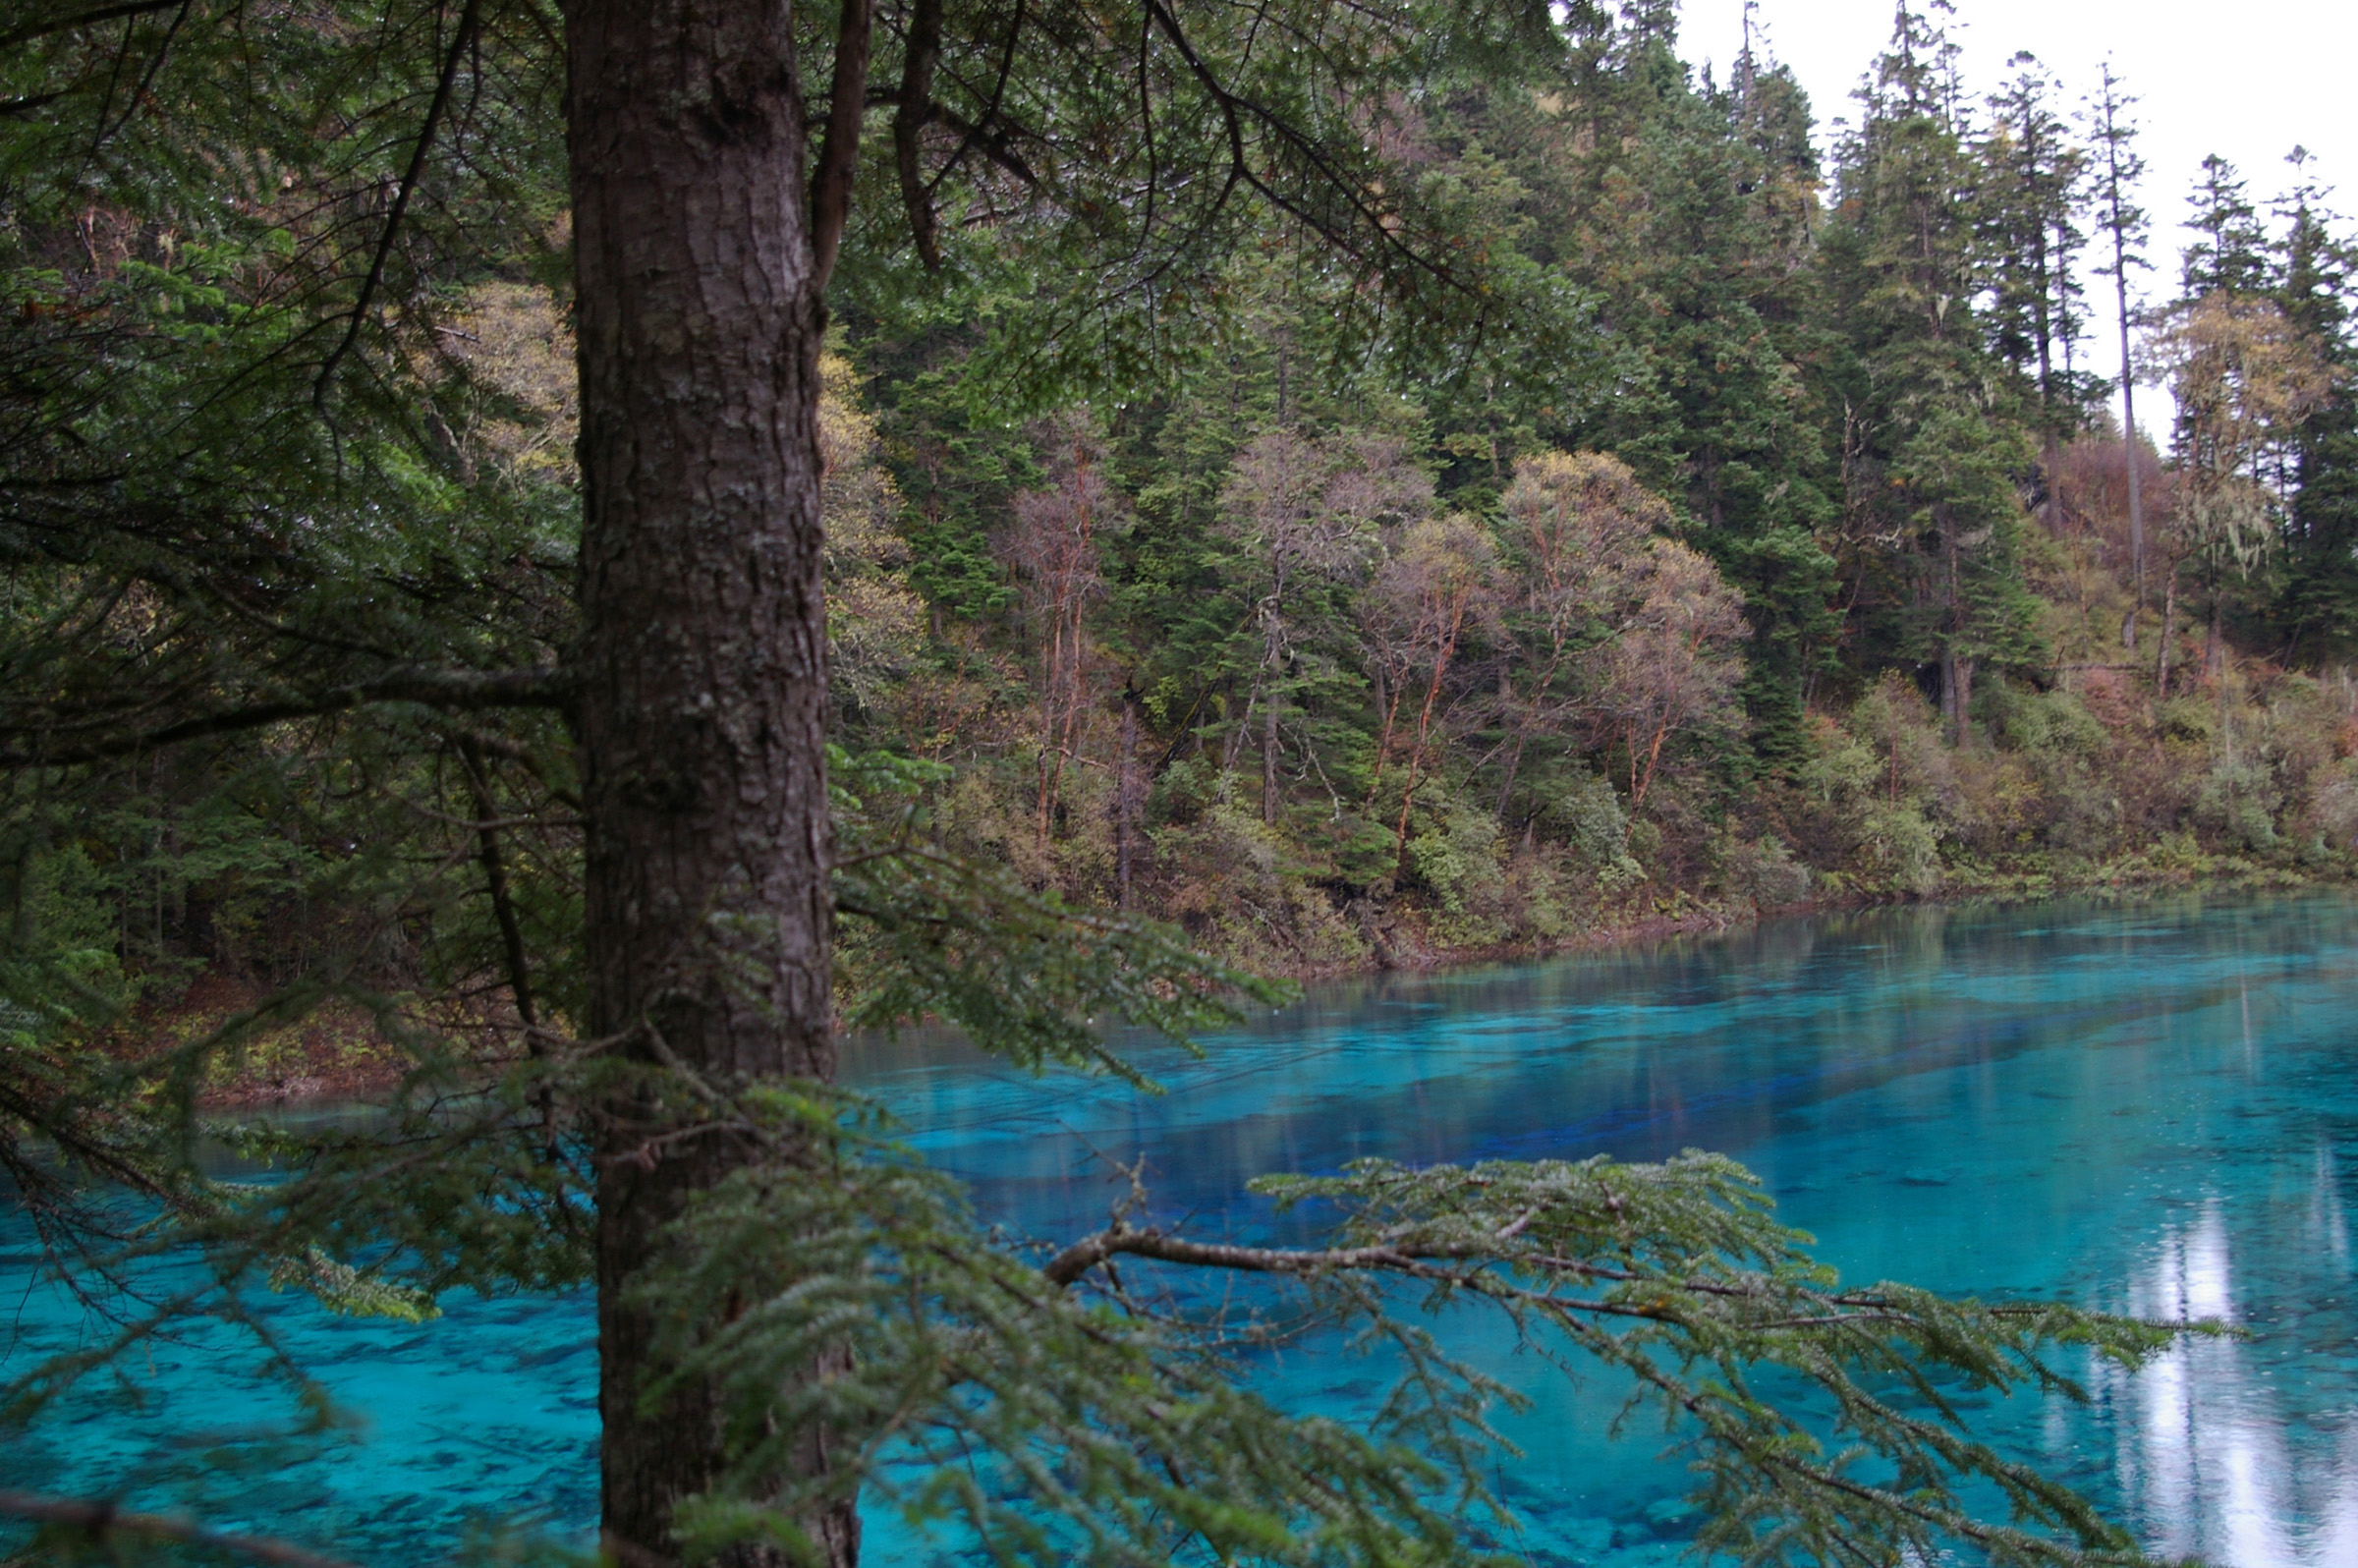 Scenic landscape with a tranquil cyan blue lake fringed with trees and forests